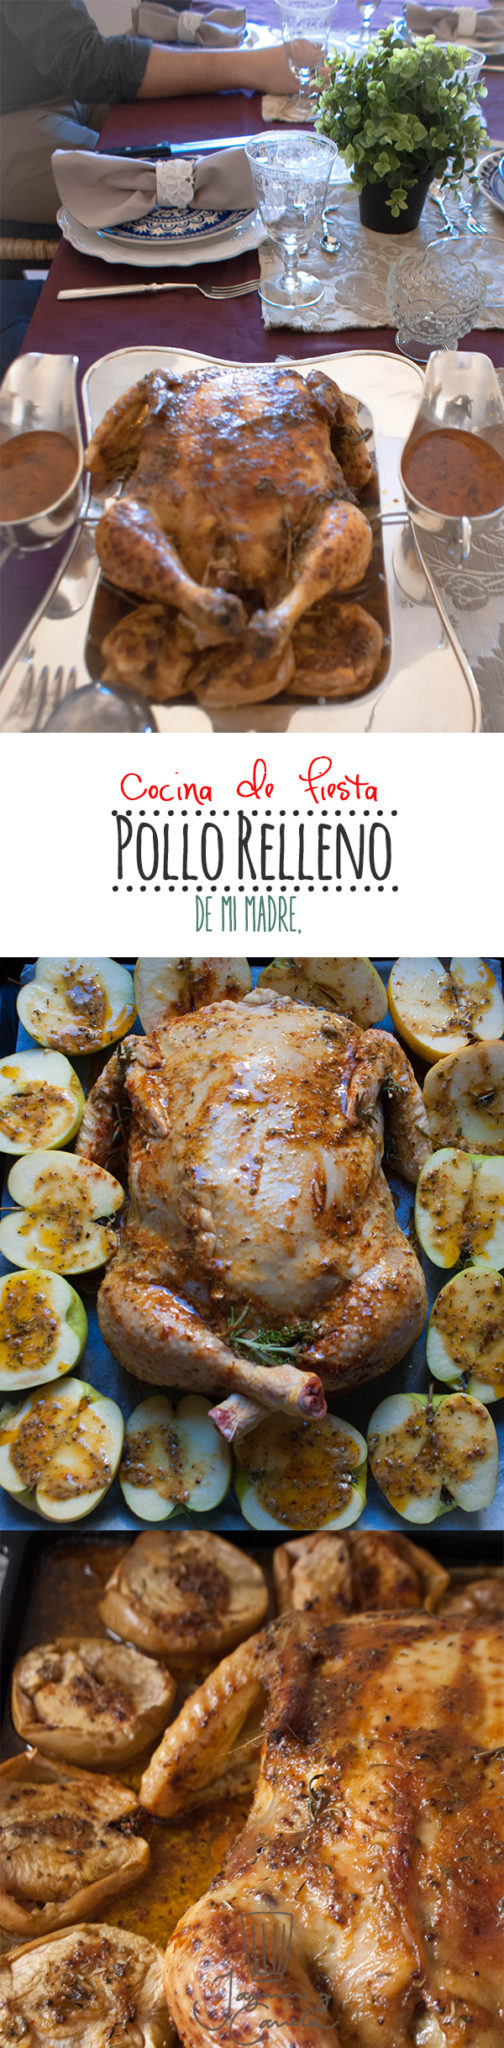 pollo relleno largo pinterest